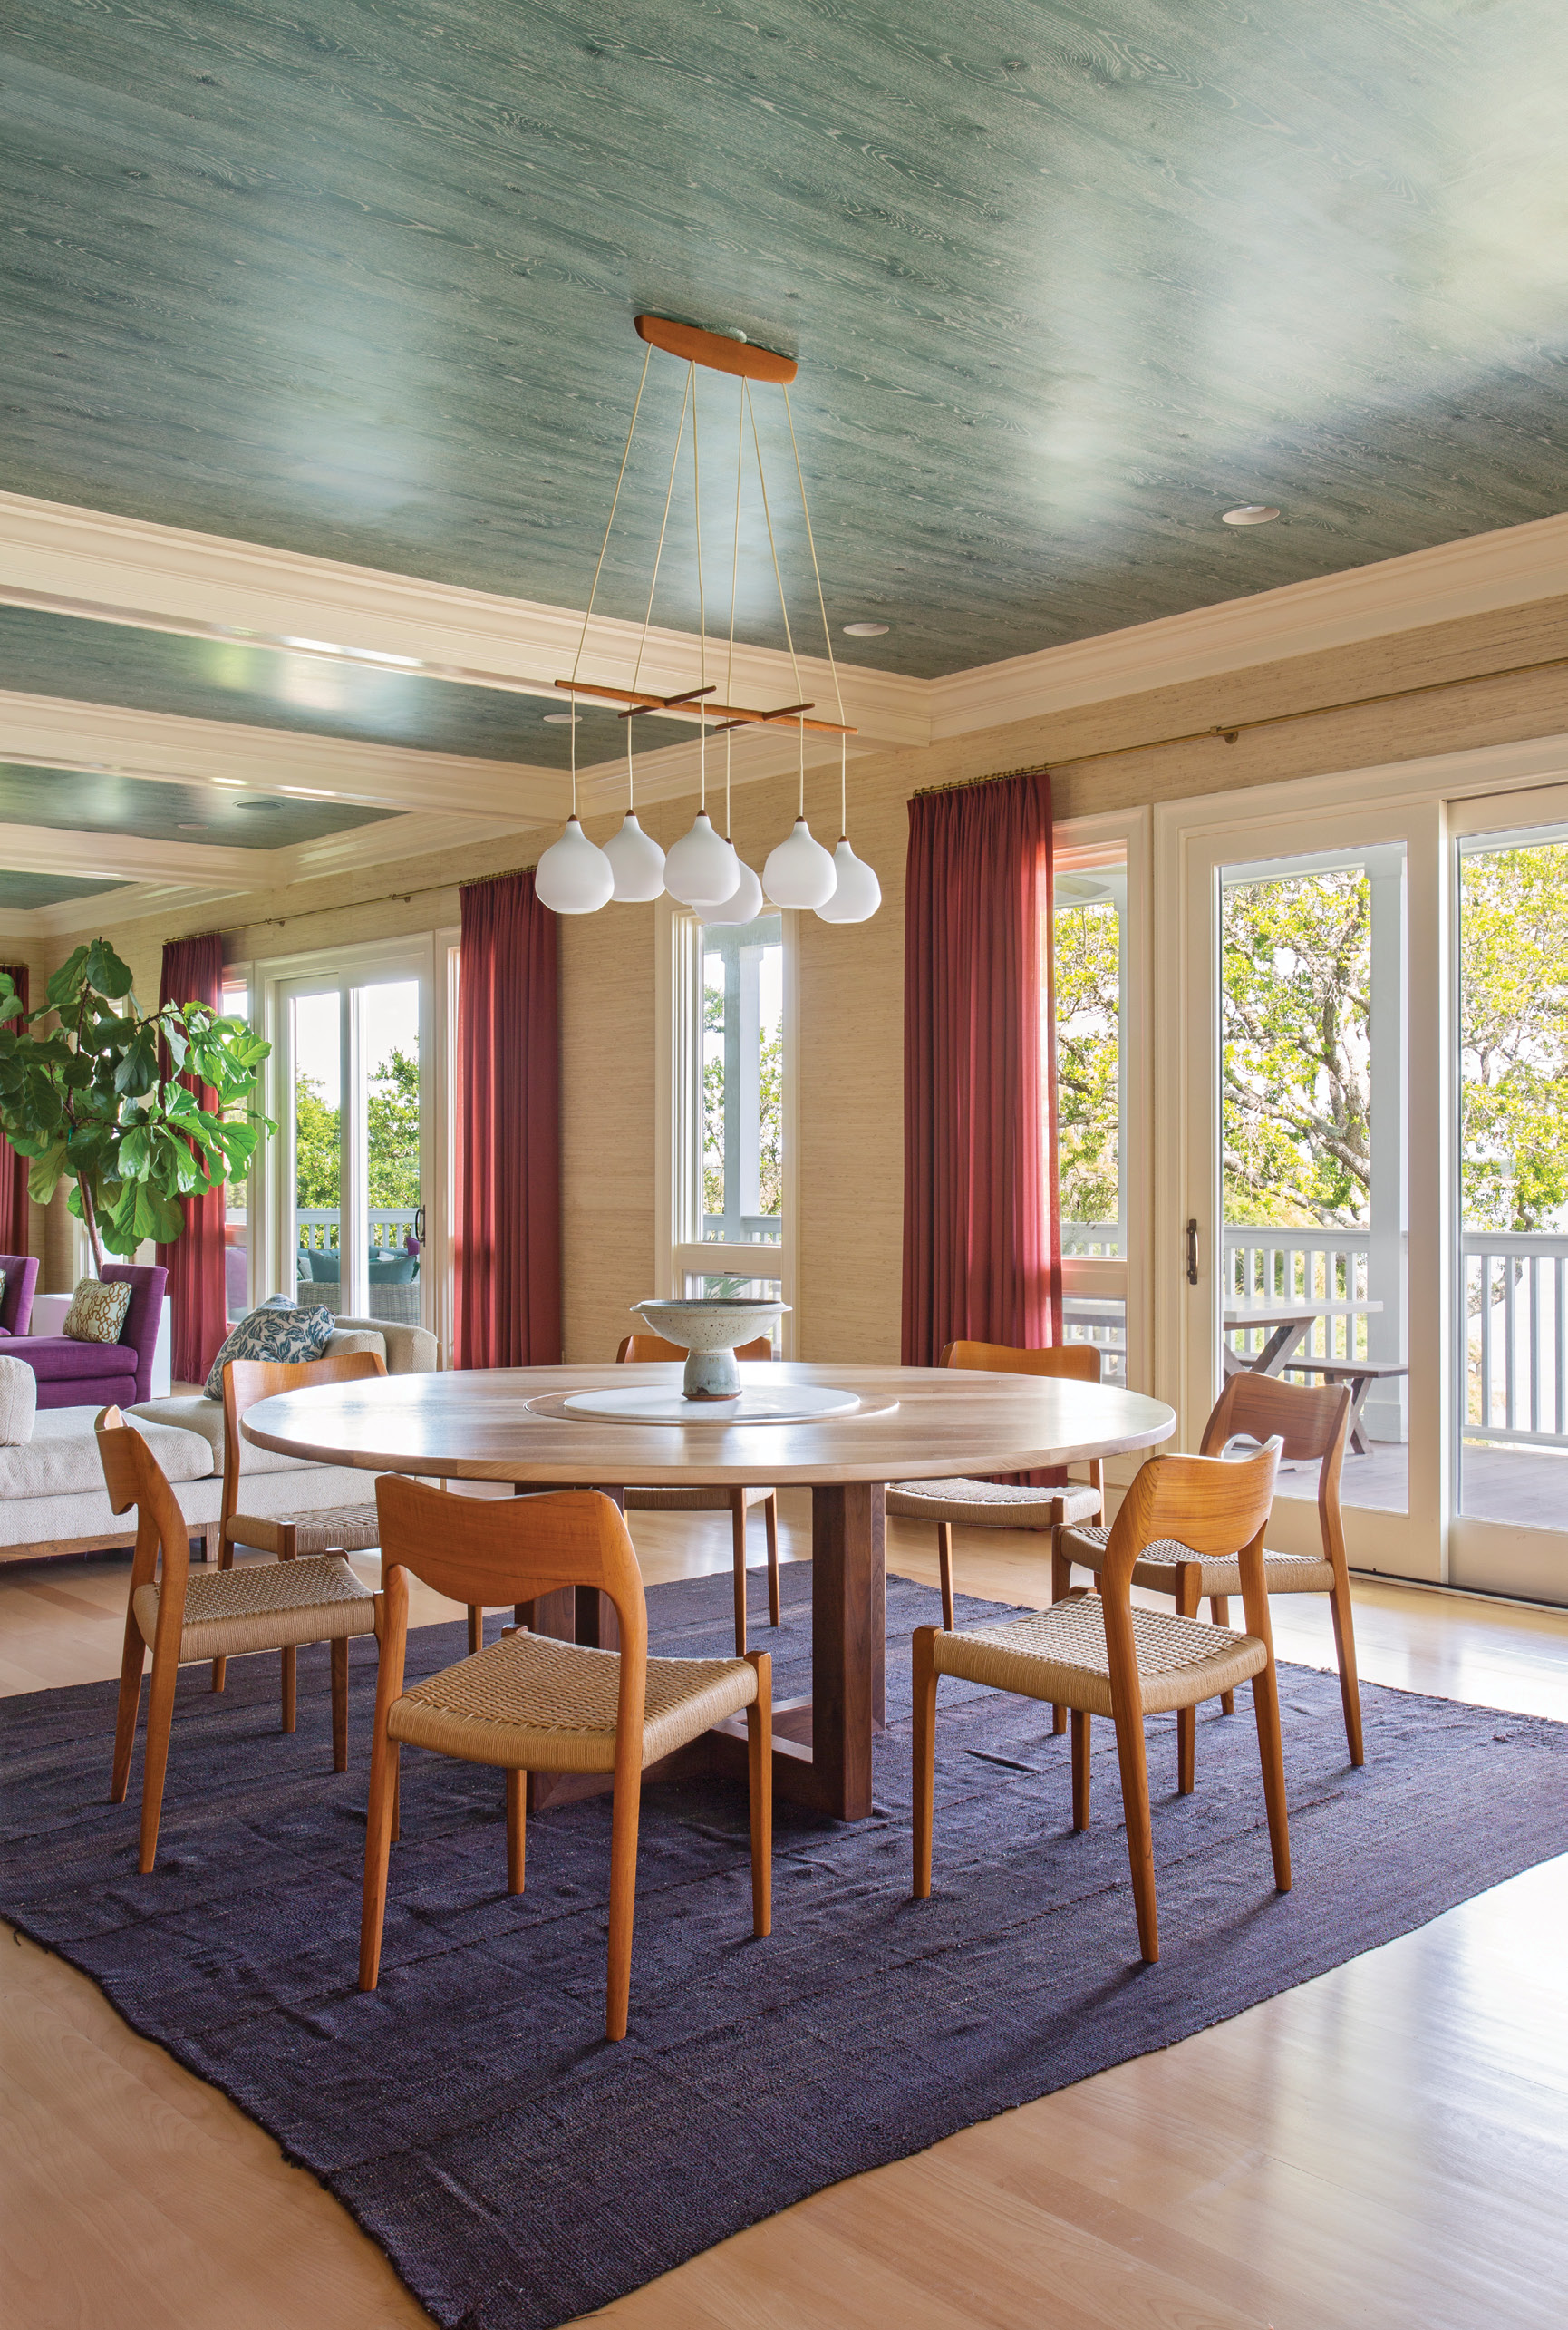 """""""A round table was definitely called for here,"""" says Hranowsky, who was seeking to balance the kitchen's linear shapes. Her carpenter custom created the walnut dining table, outfitted with a marble lazy Susan that was Phil's engineering. A vintage Danish teak and white glass chandelier from 1stDibs adds casual spunk to the dining room without obstructing views into the kitchen or out to the waterway."""